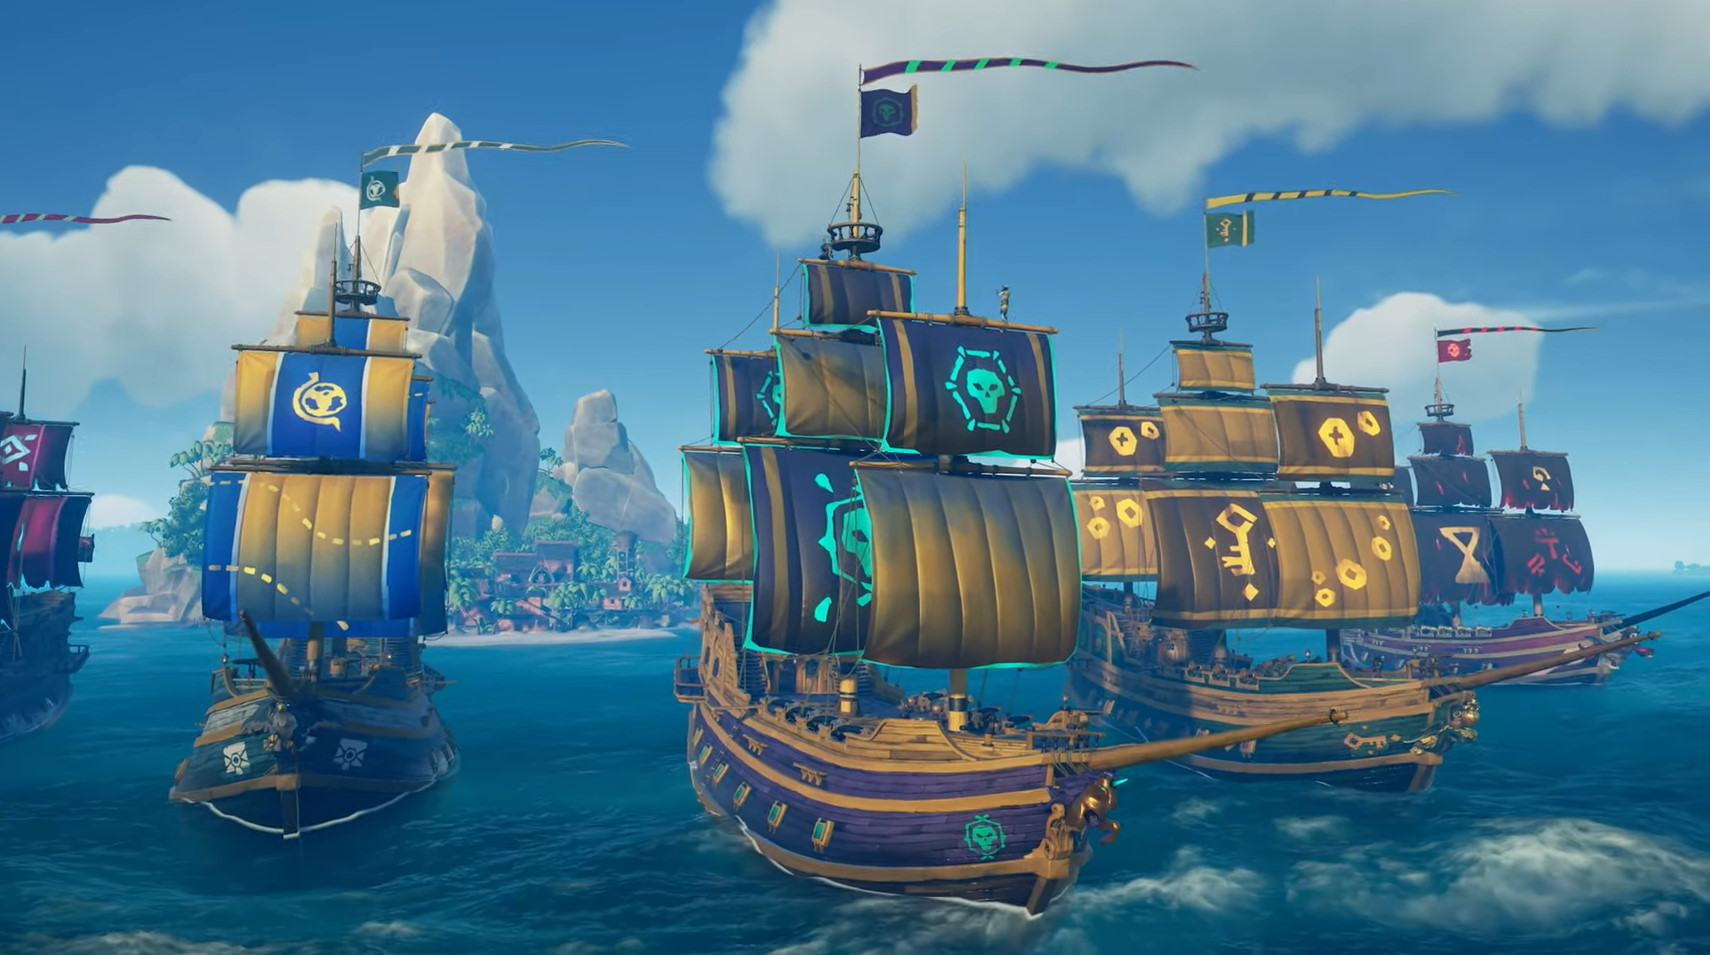 Sea of Thieves is switching to seasonal updates and a battle pass